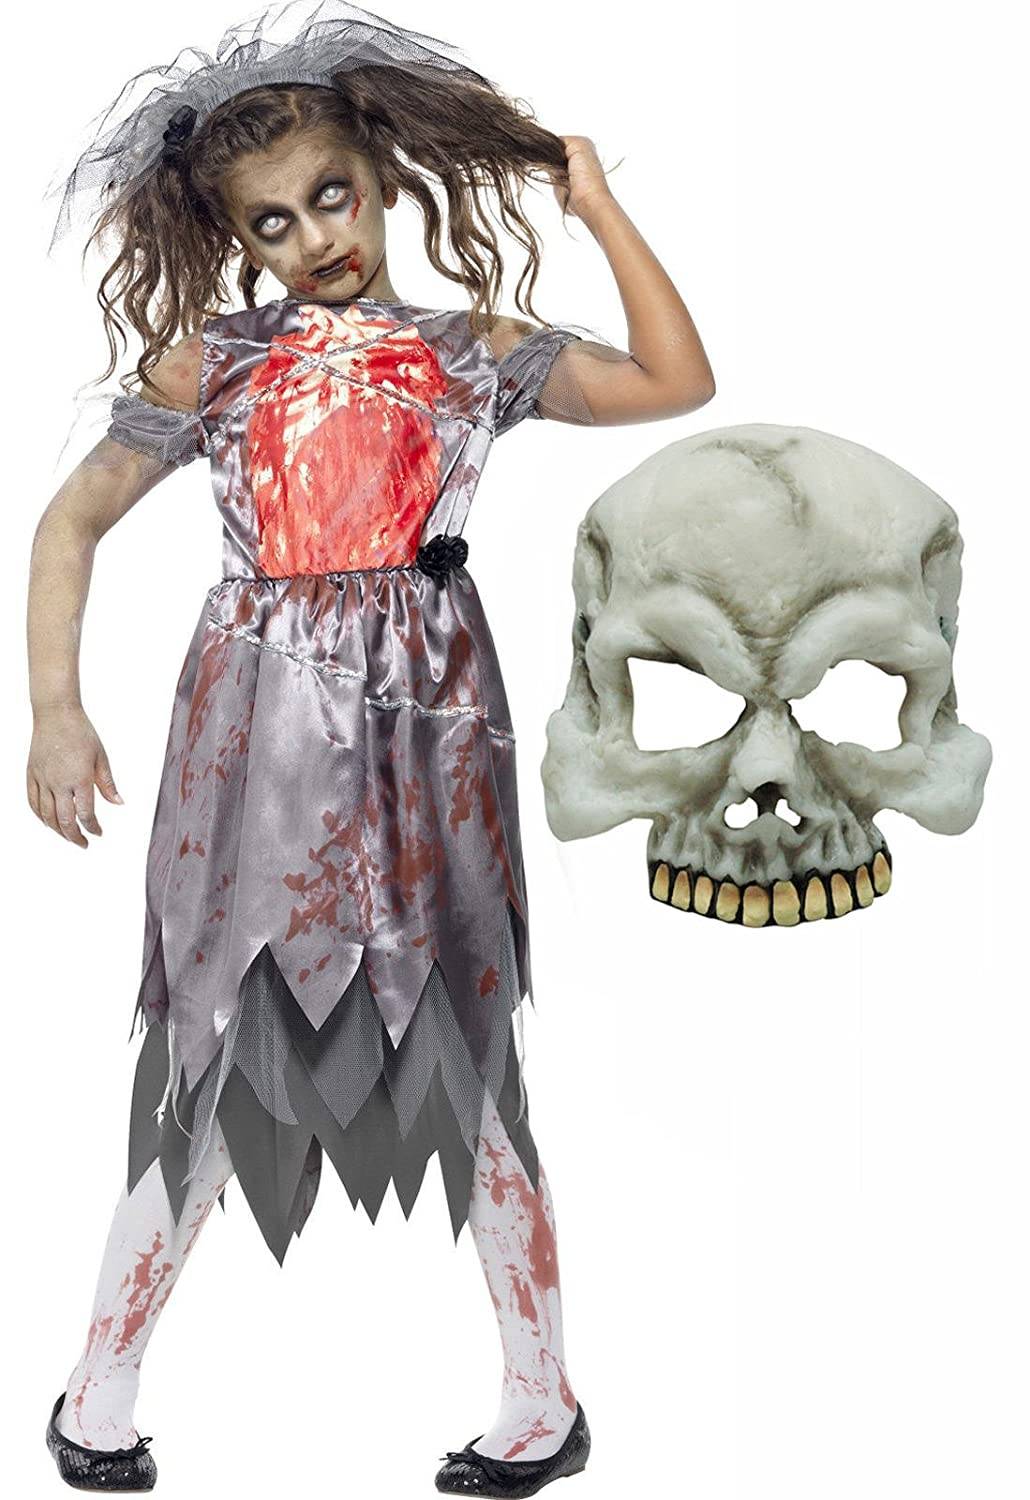 Halloween Costumes For Girls Age 13 14.Zombie Dead Corpse Bride Girls Halloween Costume With Mask